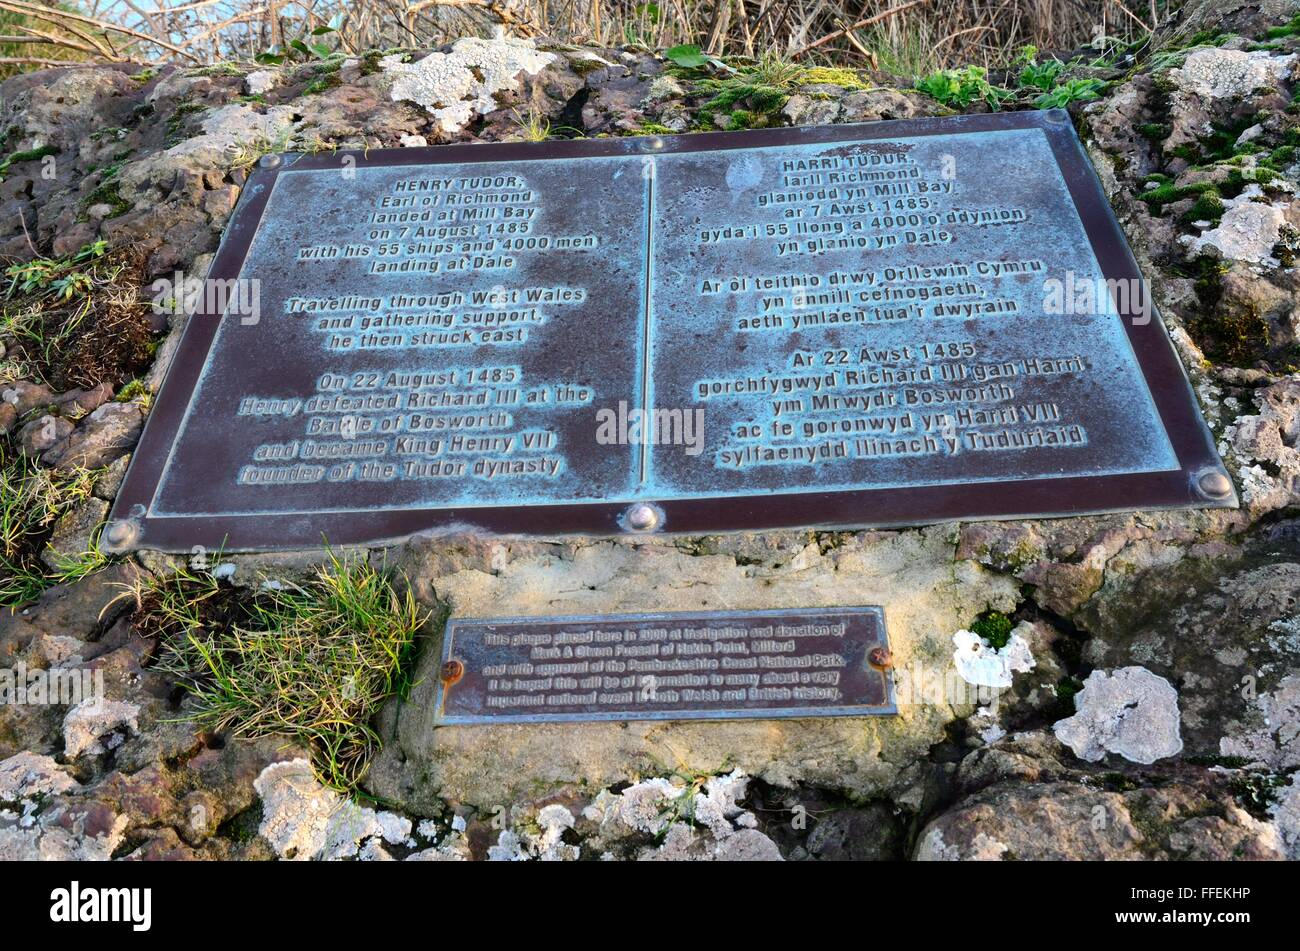 Plaque to commemorate Henry Tudor Earl of Richmond above Mill Bay Dale Pembrokeshire Wales Cymru UK GB - Stock Image